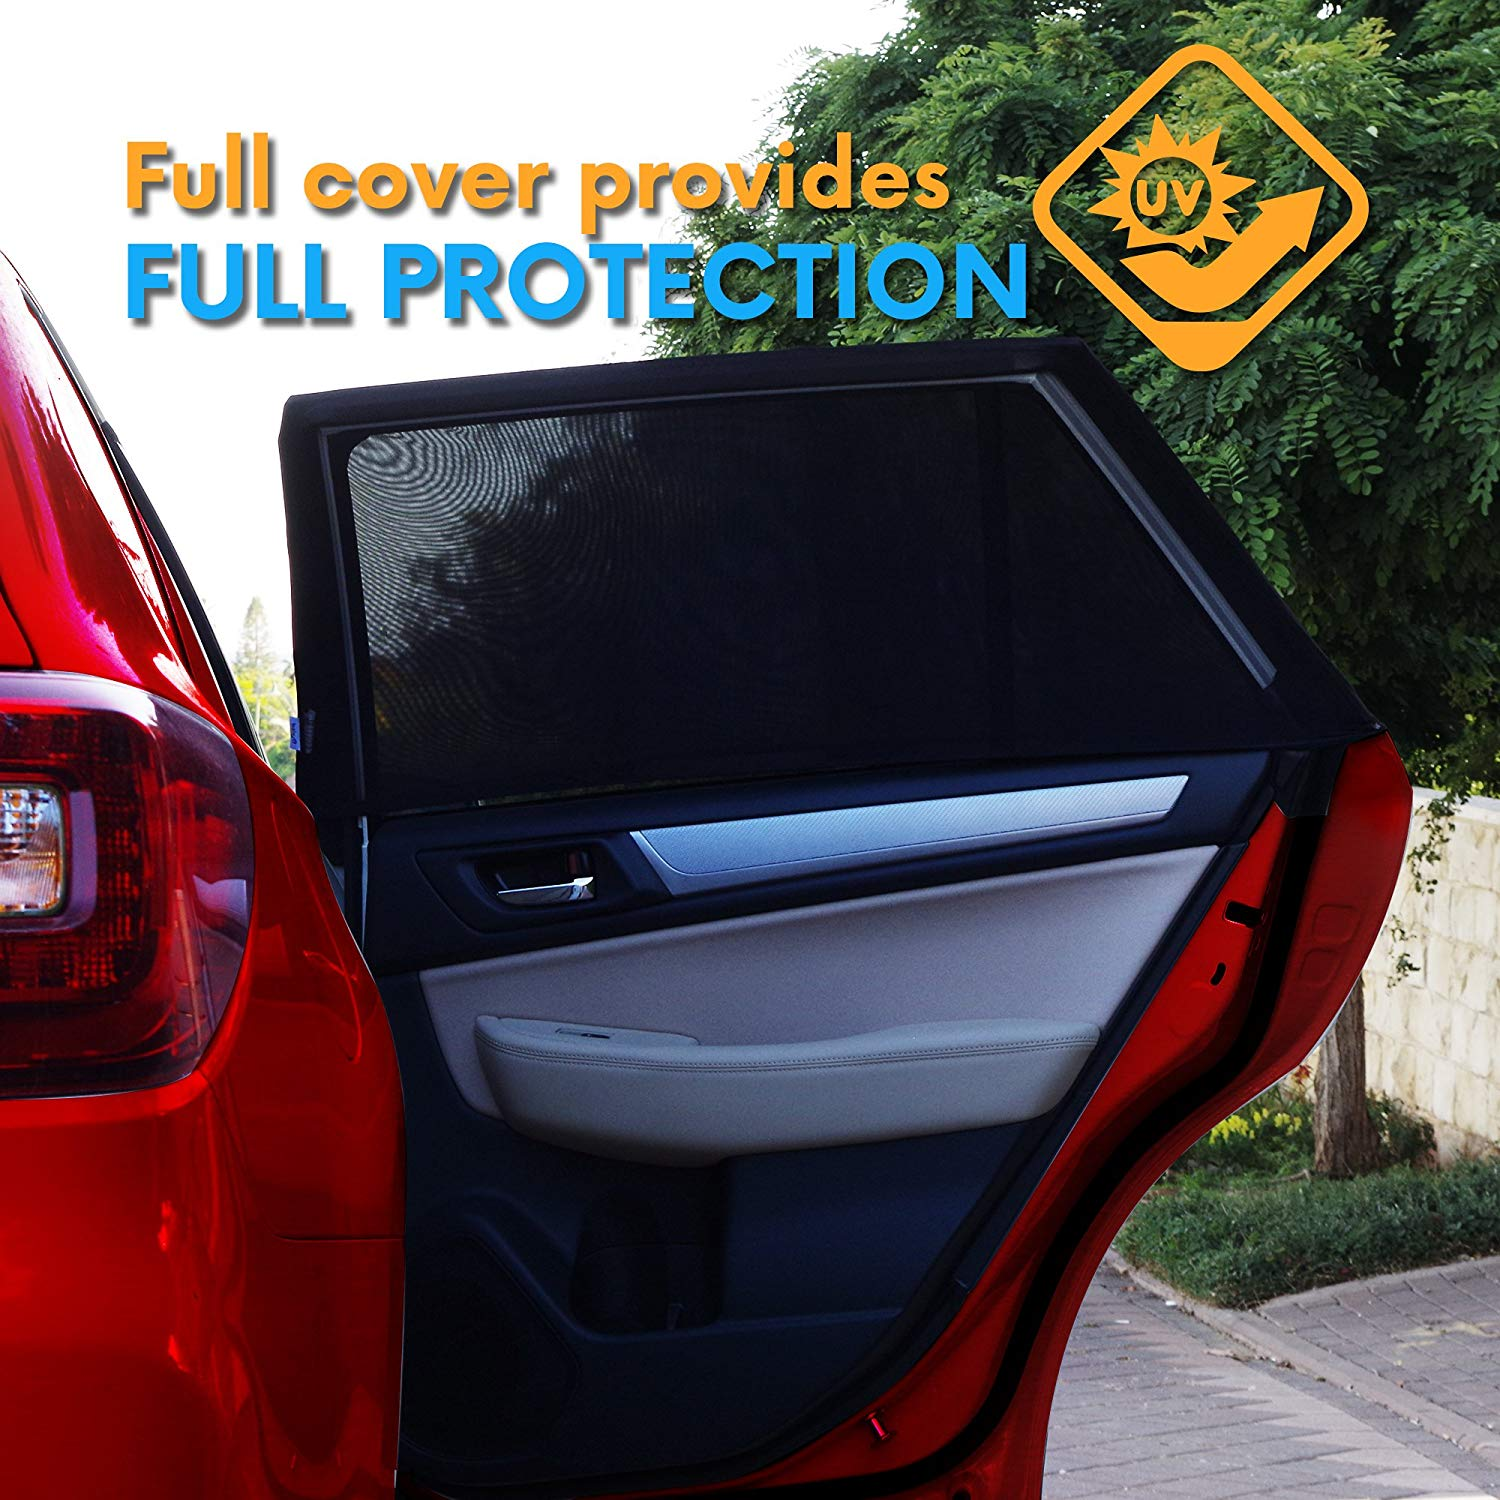 Adjustable Sunshade - Car's side window cover